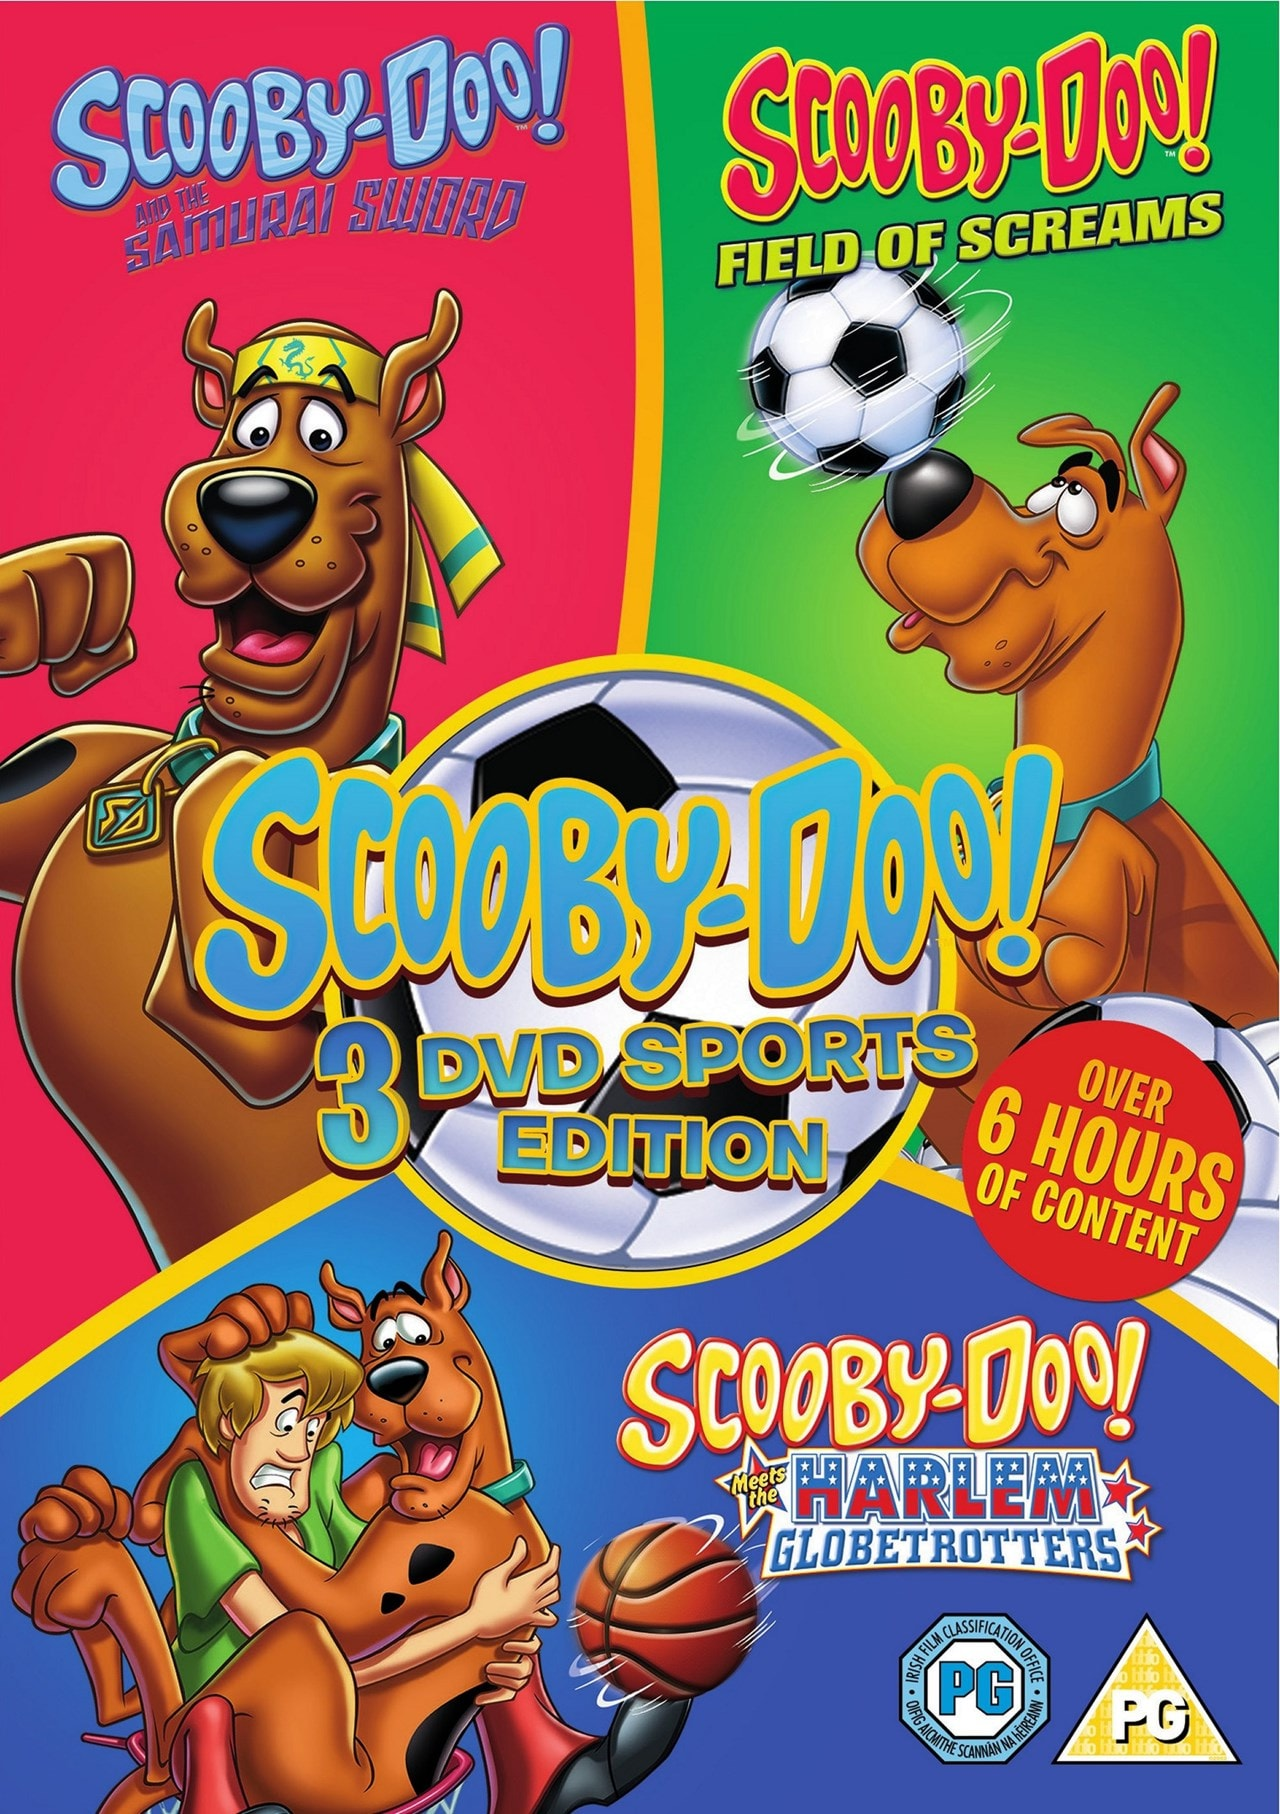 Scooby-Doo: Sports Edition - 1